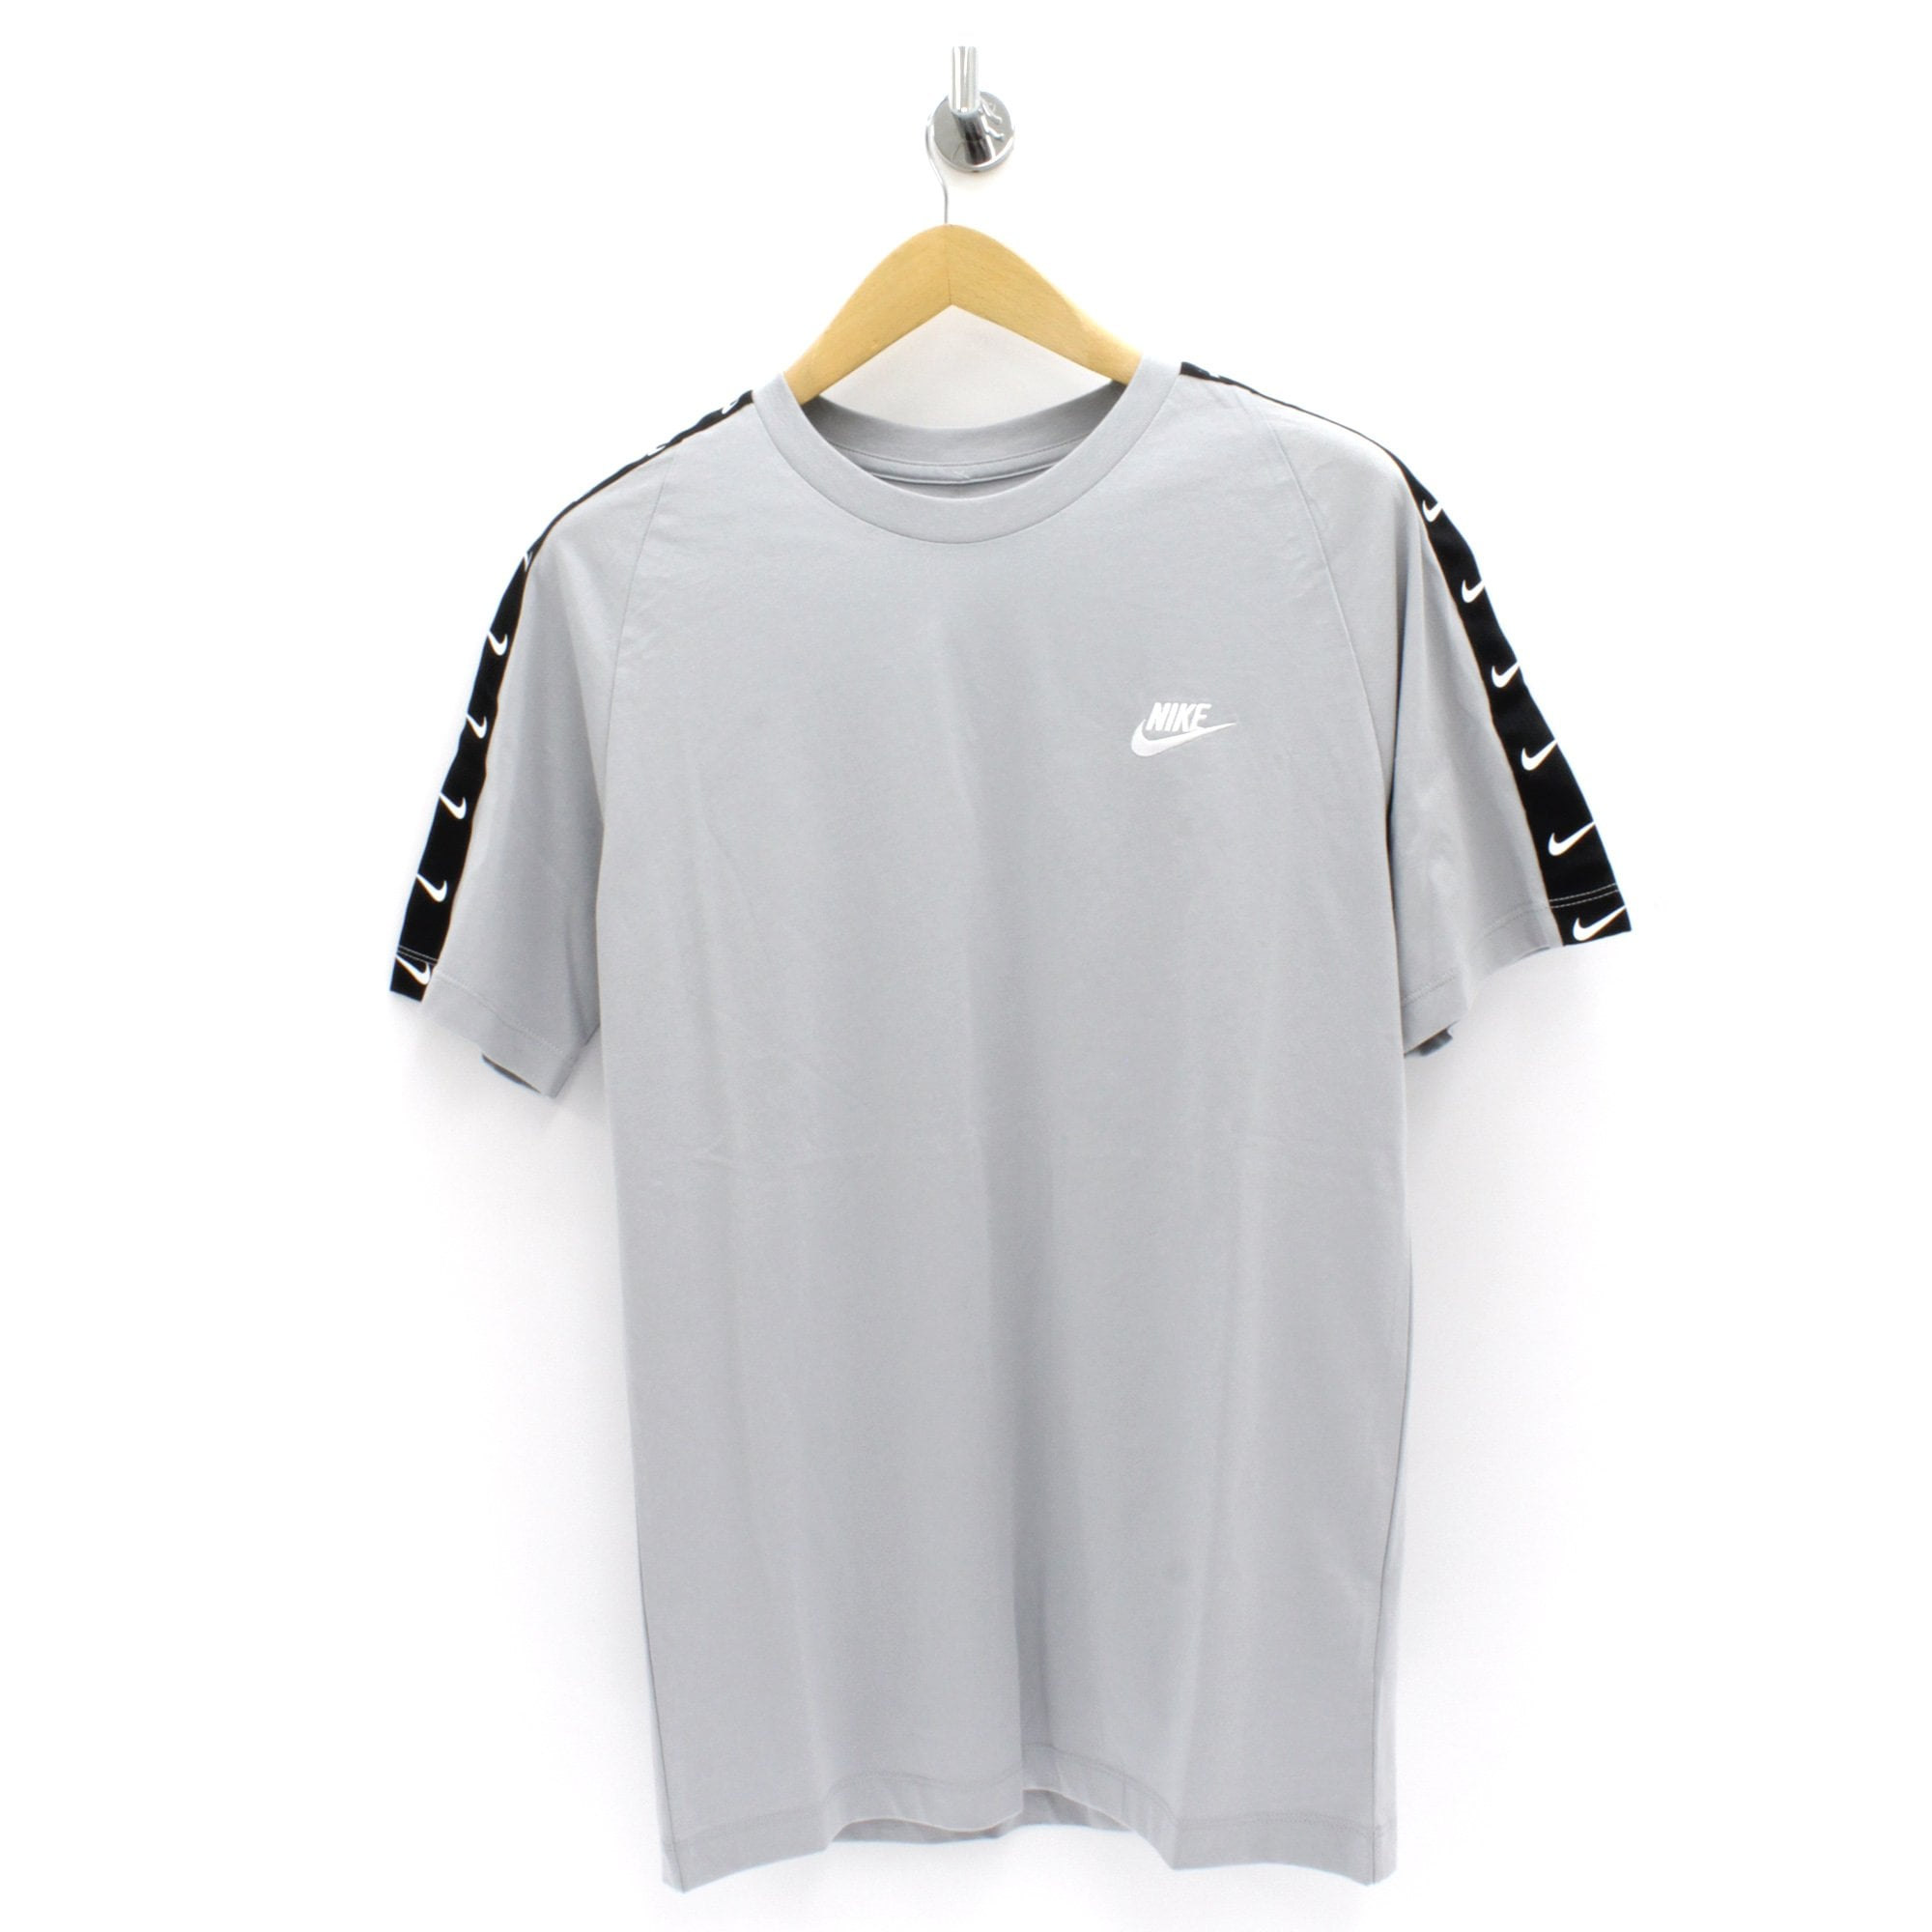 guerra procedimiento camión  NIKE CLOTHING Swoosh Tape Grey T Shirt - Mens from PILOT UK